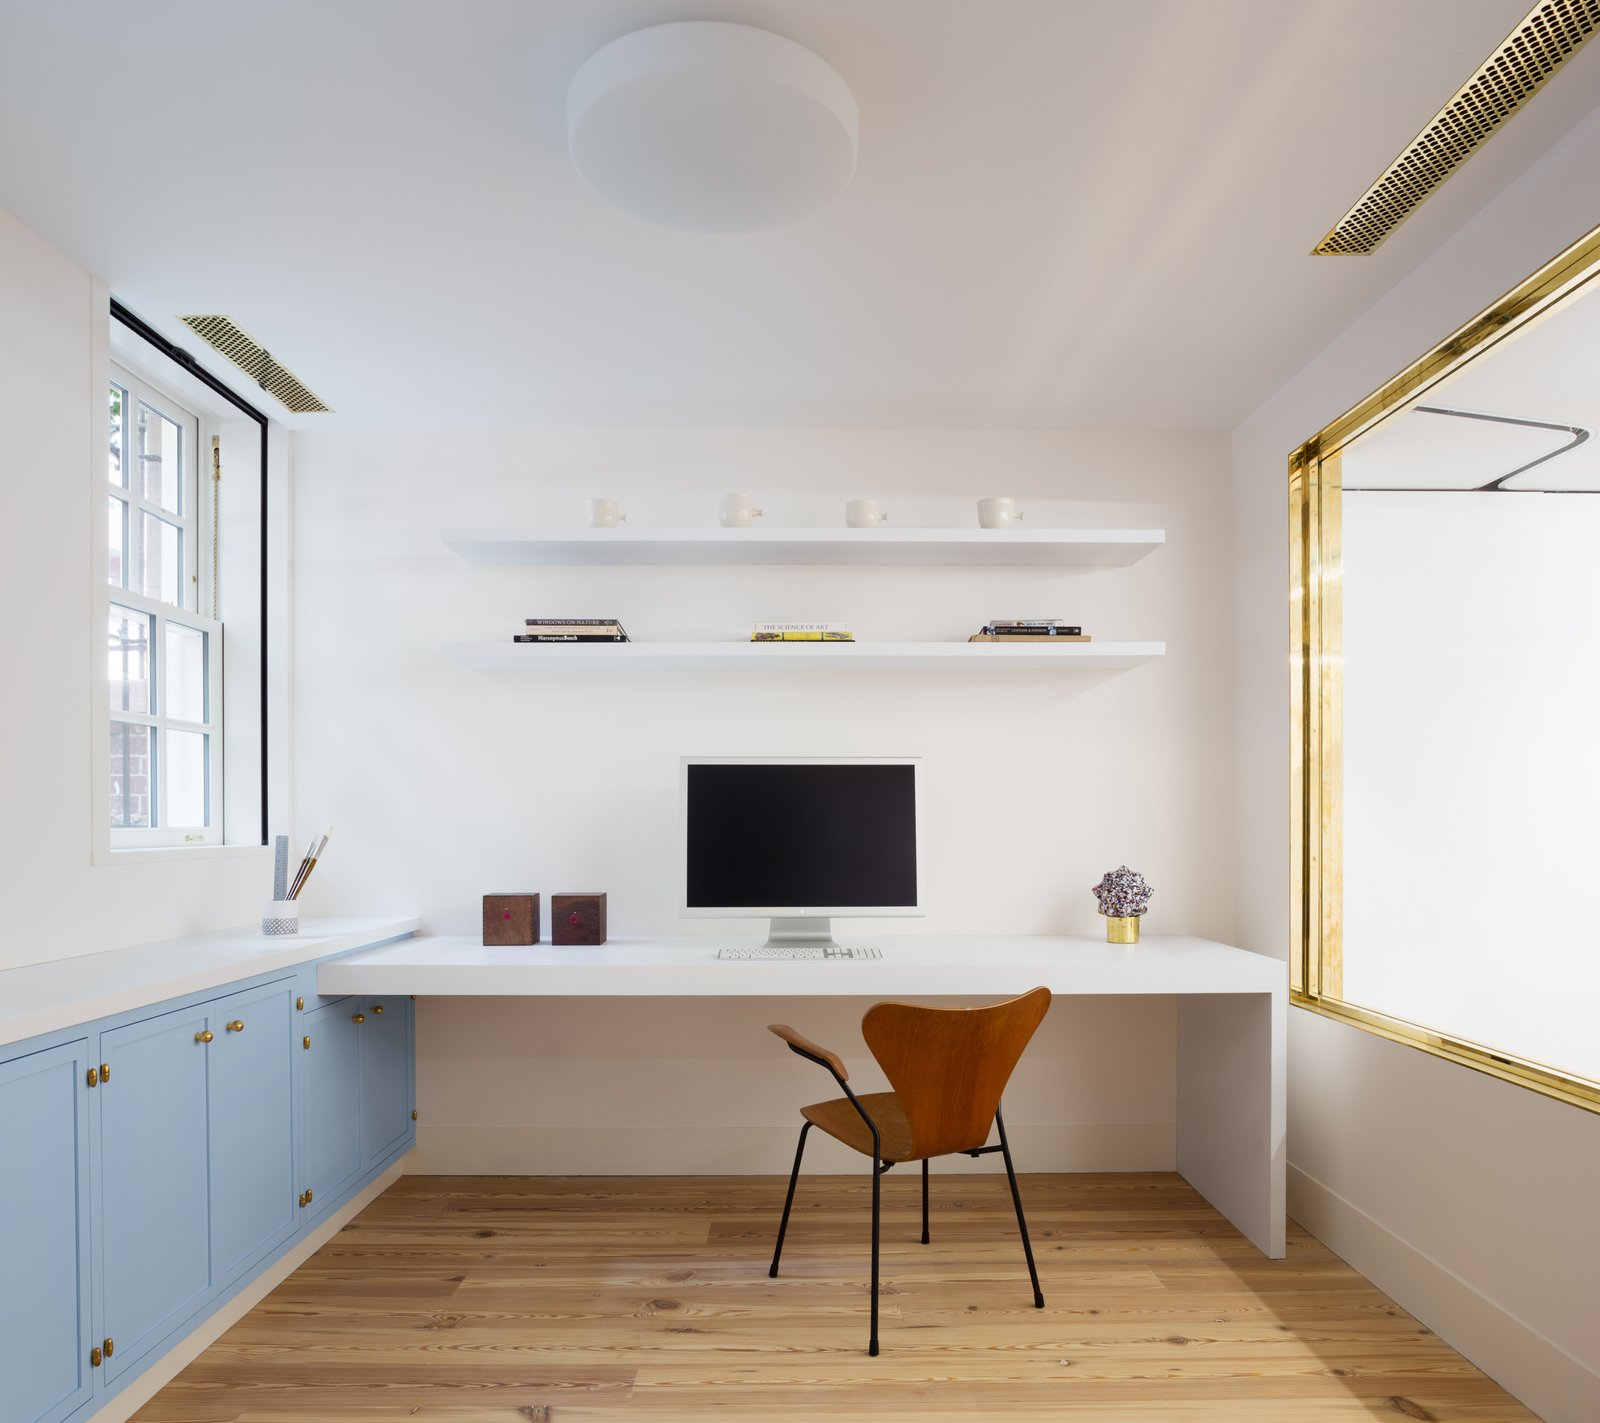 The cellar now houses an office, studio, and exhibition space.